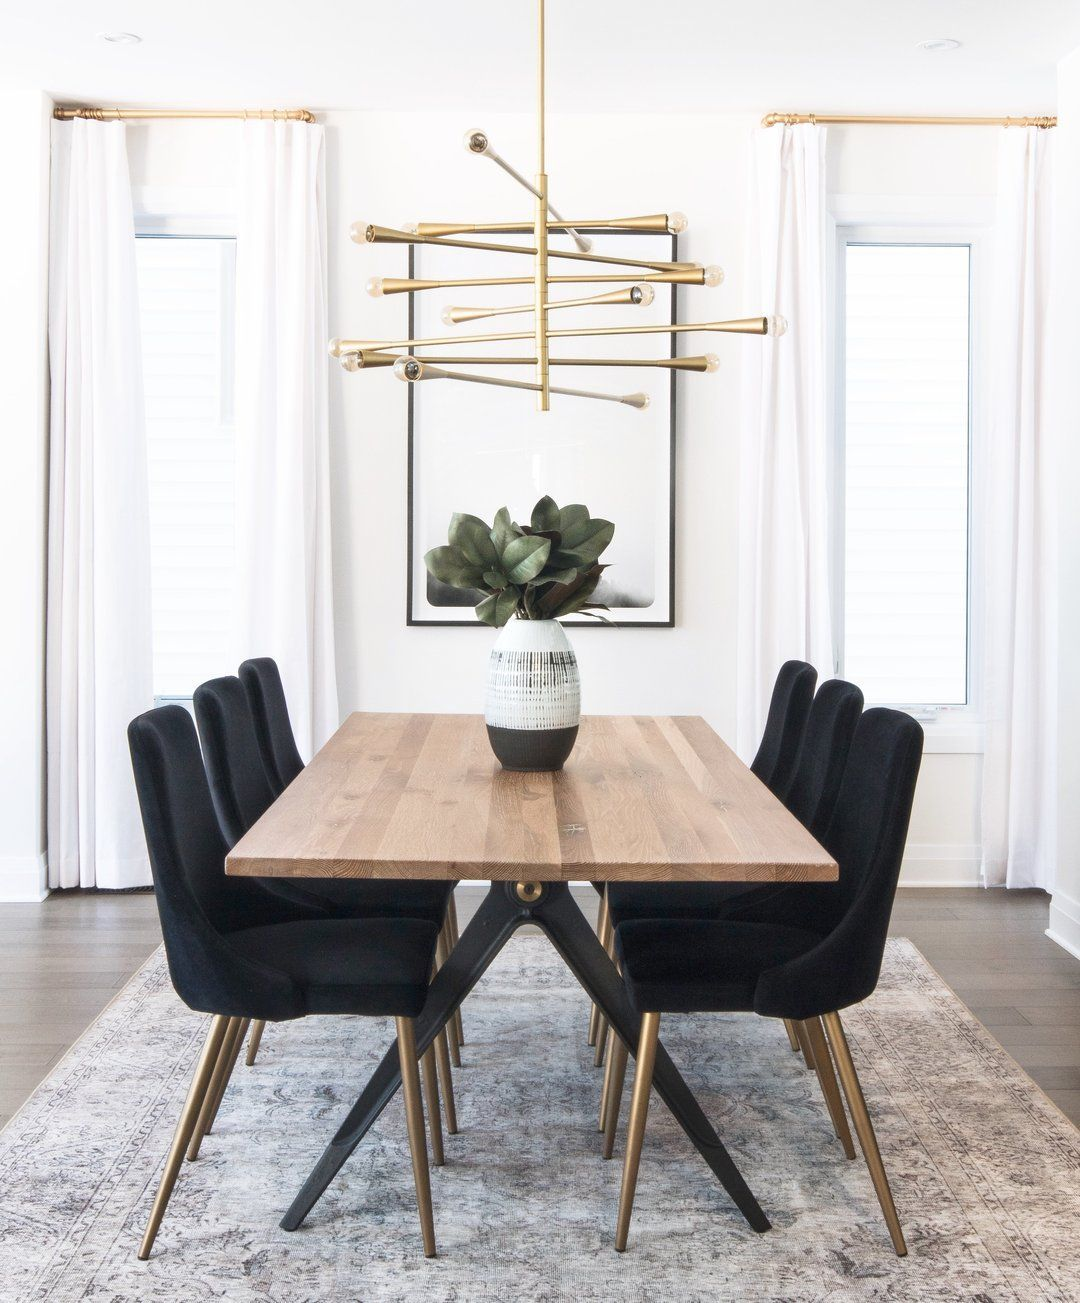 Get Inspired By These Dining Room Decor Ideas From Dining Room Furniture Ideas Dining Room Velvet Dining Chairs Dining Room Design Modern Modern Dining Room Decor dining room chairs